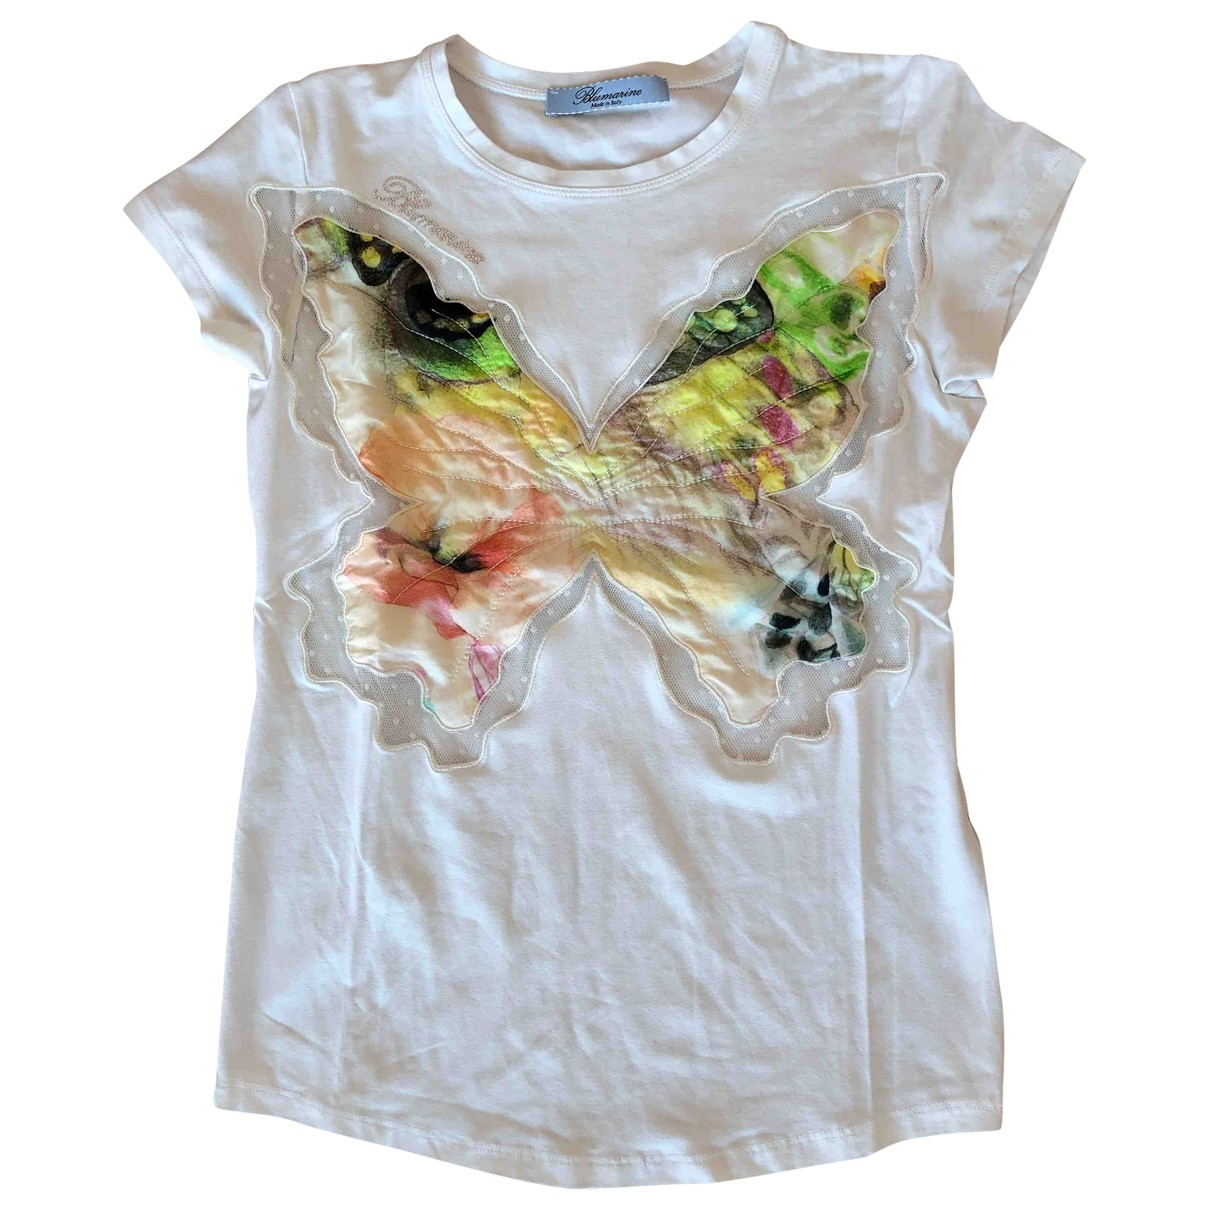 Blumarine \N White  top for Women 38 IT